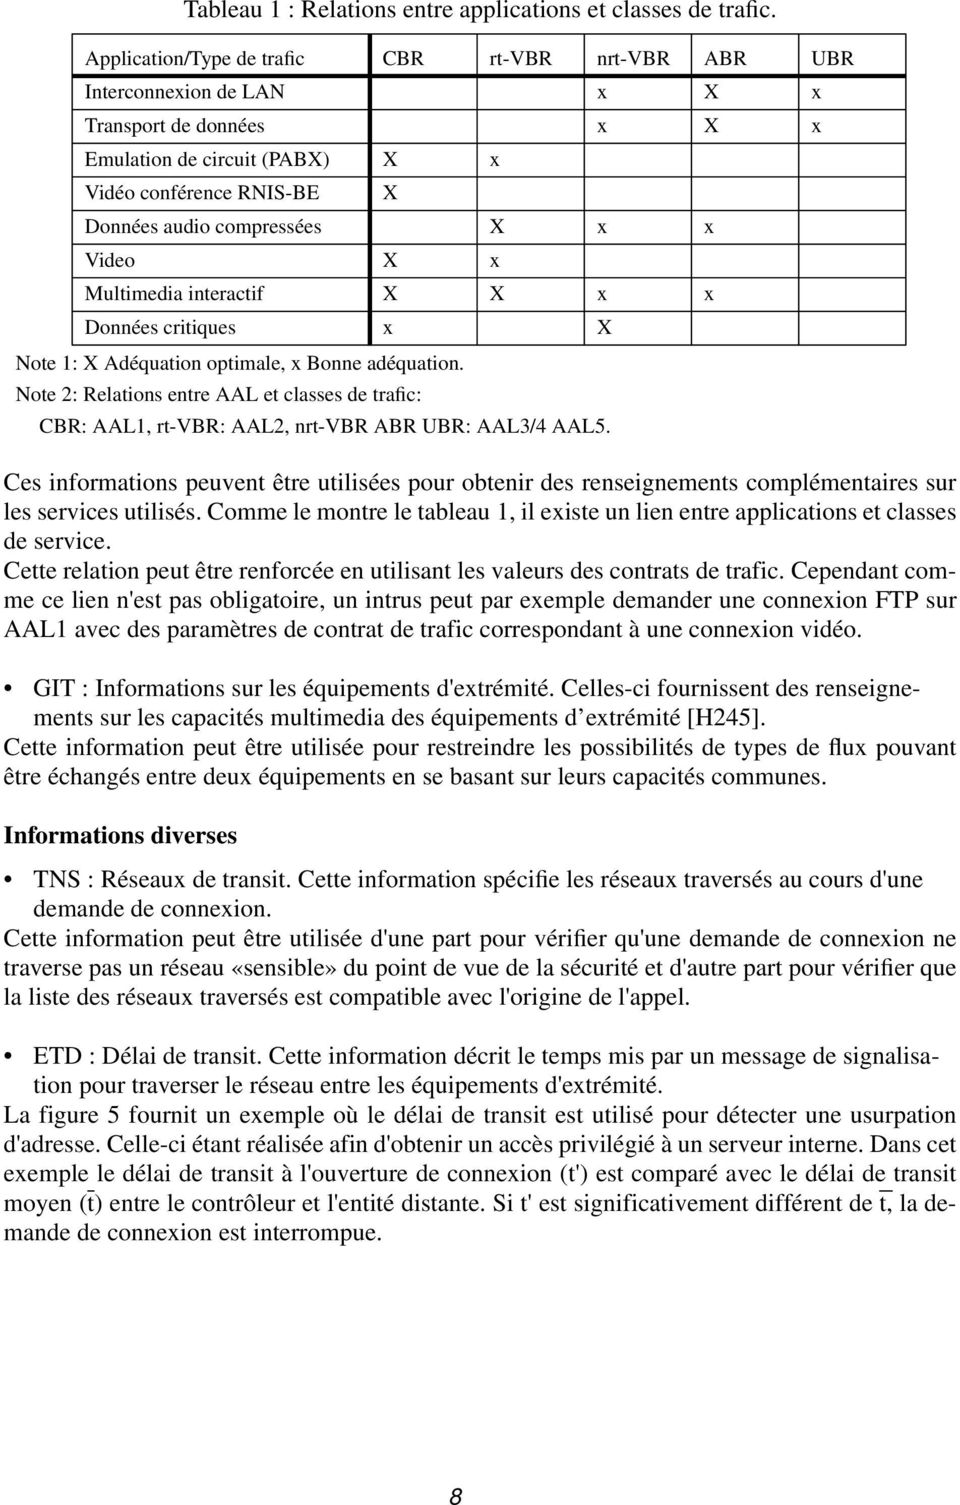 Multimedia interactif x x Données critiques x Note 1: Adéquation optimale, x Bonne adéquation. Note 2: Relations entre AAL et classes de trafic: CBR: AAL1, rt-vbr: AAL2, nrt-vbr ABR UBR: AAL3/4 AAL5.